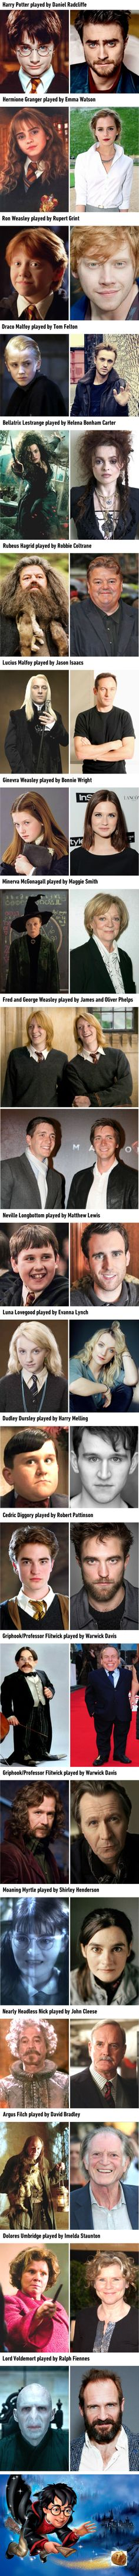 A Fascinating Look at the Stars of Harry Potter 16 Years Later